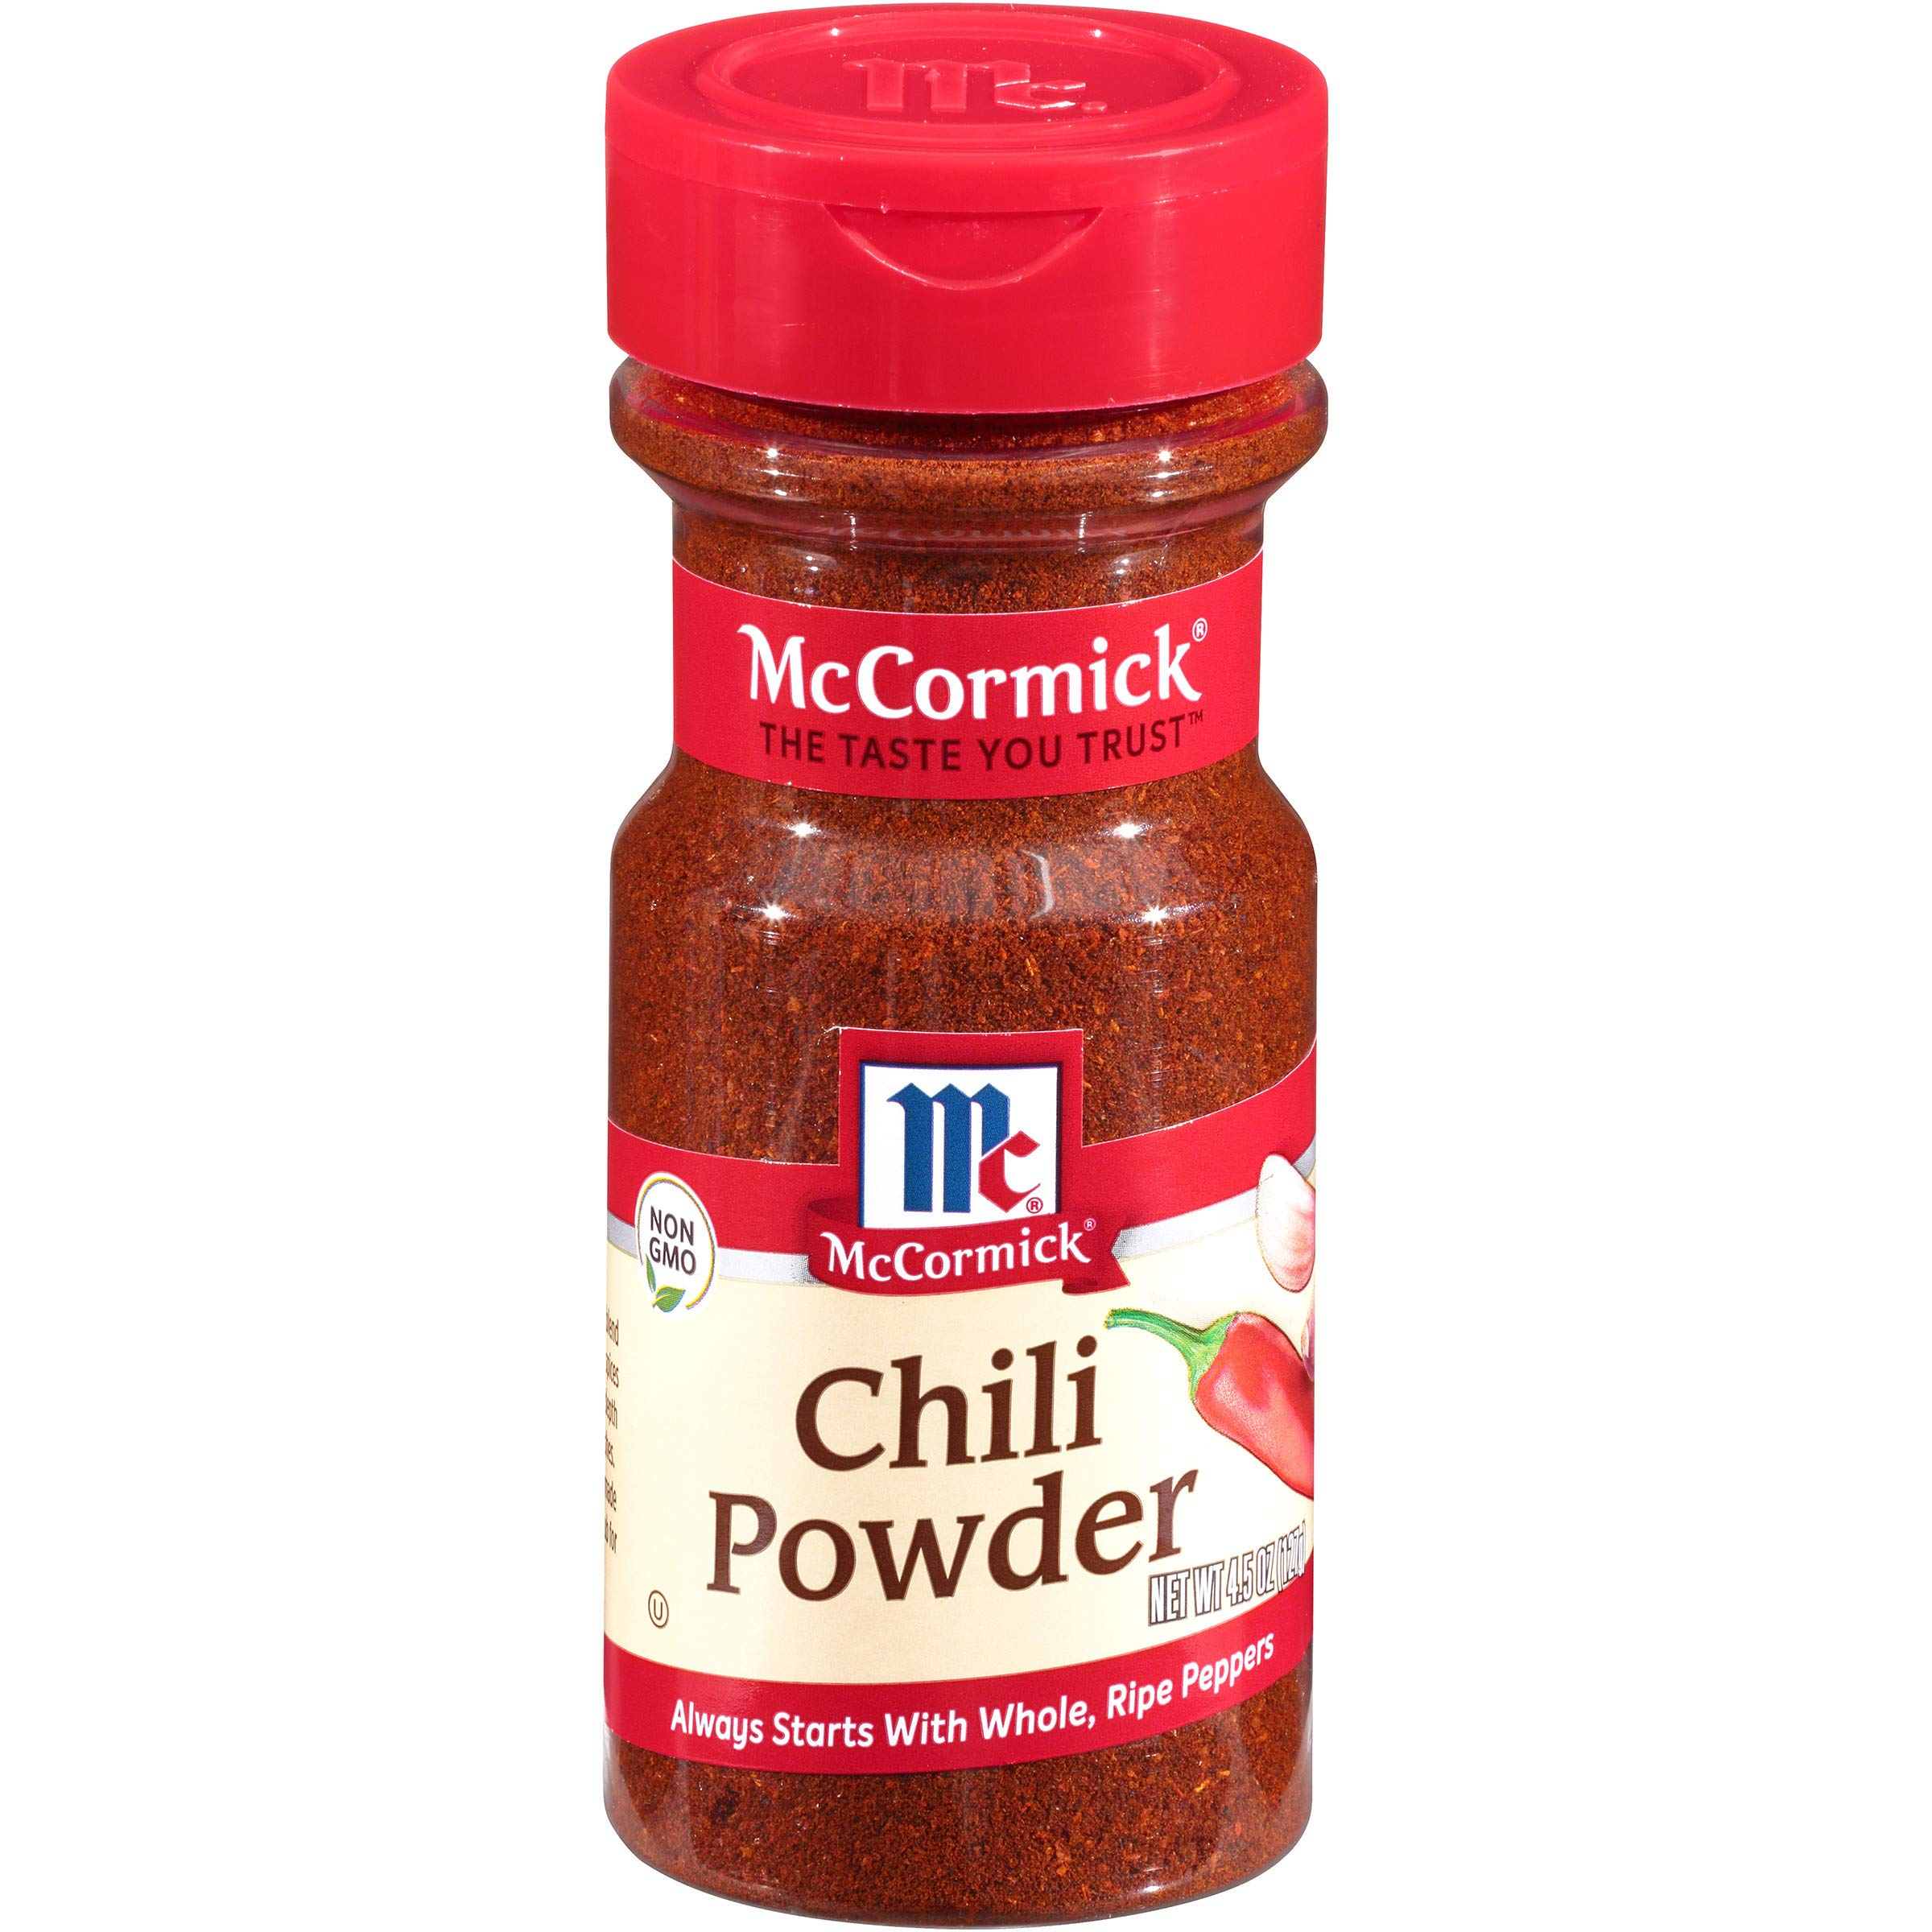 McCormick Chili Powder, 4.5 Ounce (Pack of 12)